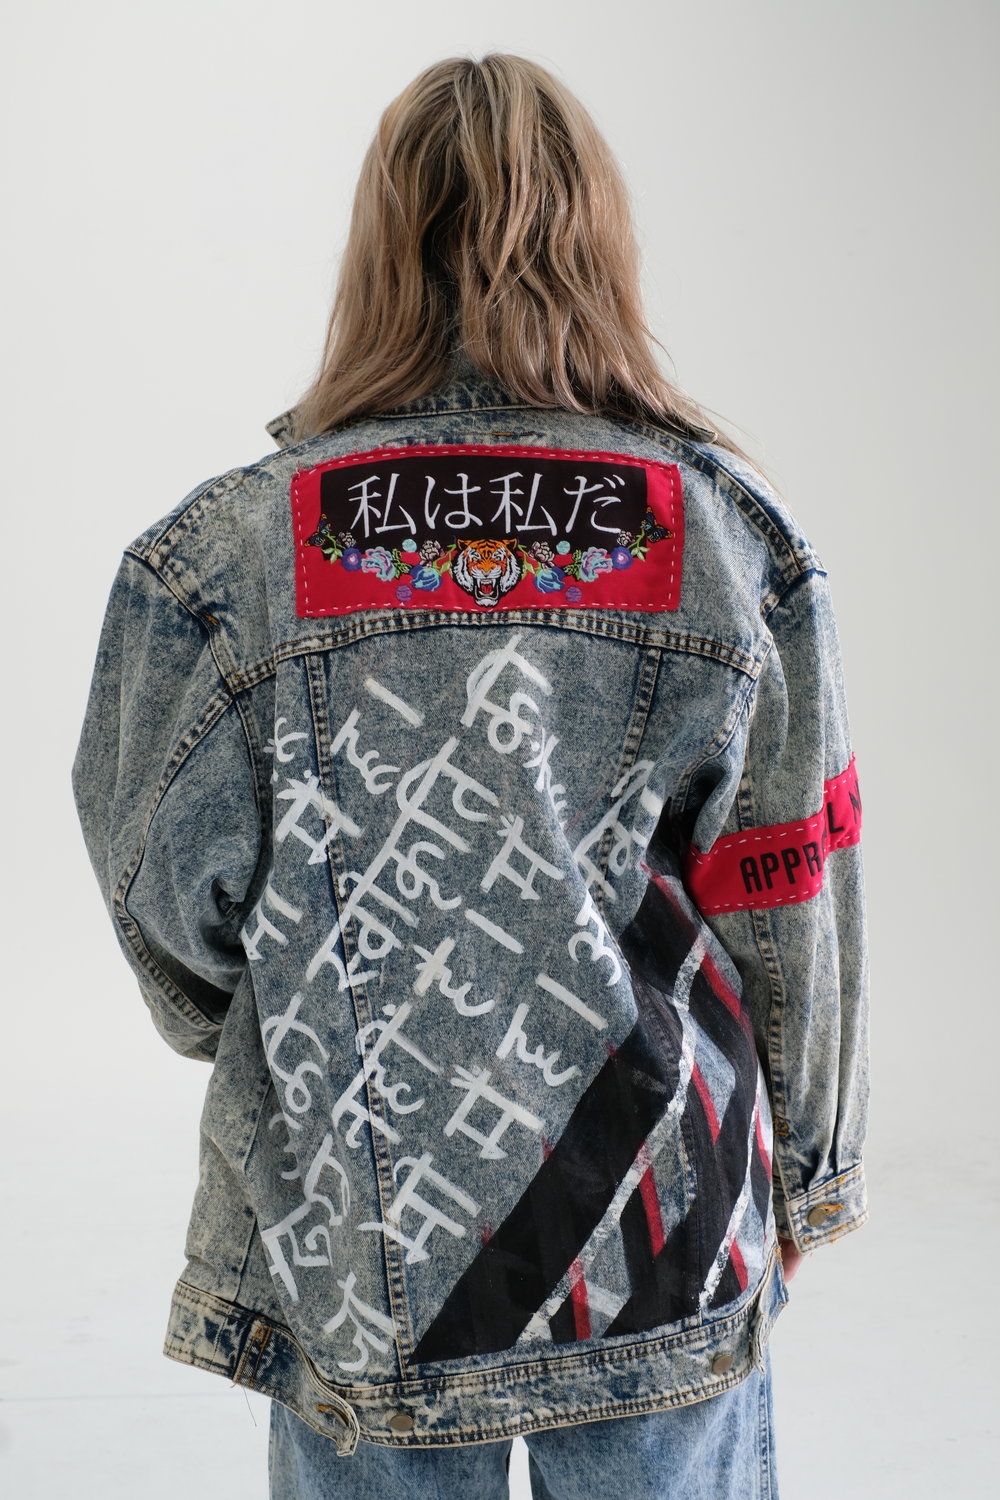 The back of our vintage recycled jacket, we have really gone to town with this one! Hindi transcript translated in to english reads 'I am who i am. Your approval is not needed; with a modern striped painted pattern underneath to add a modern twist. The back top has Japanese text embroidery which translate to read 'I am who i am.' with our bespoke floral and tiger artwork that has loads of colours involved.